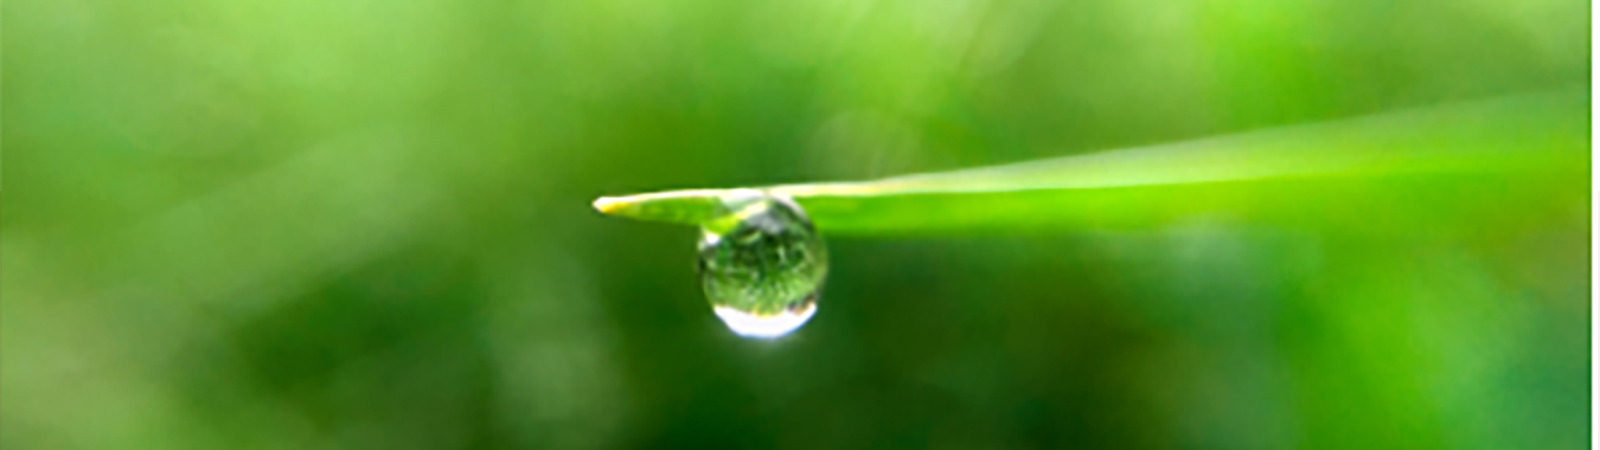 green leaf with a waterdrop at the end of leaf